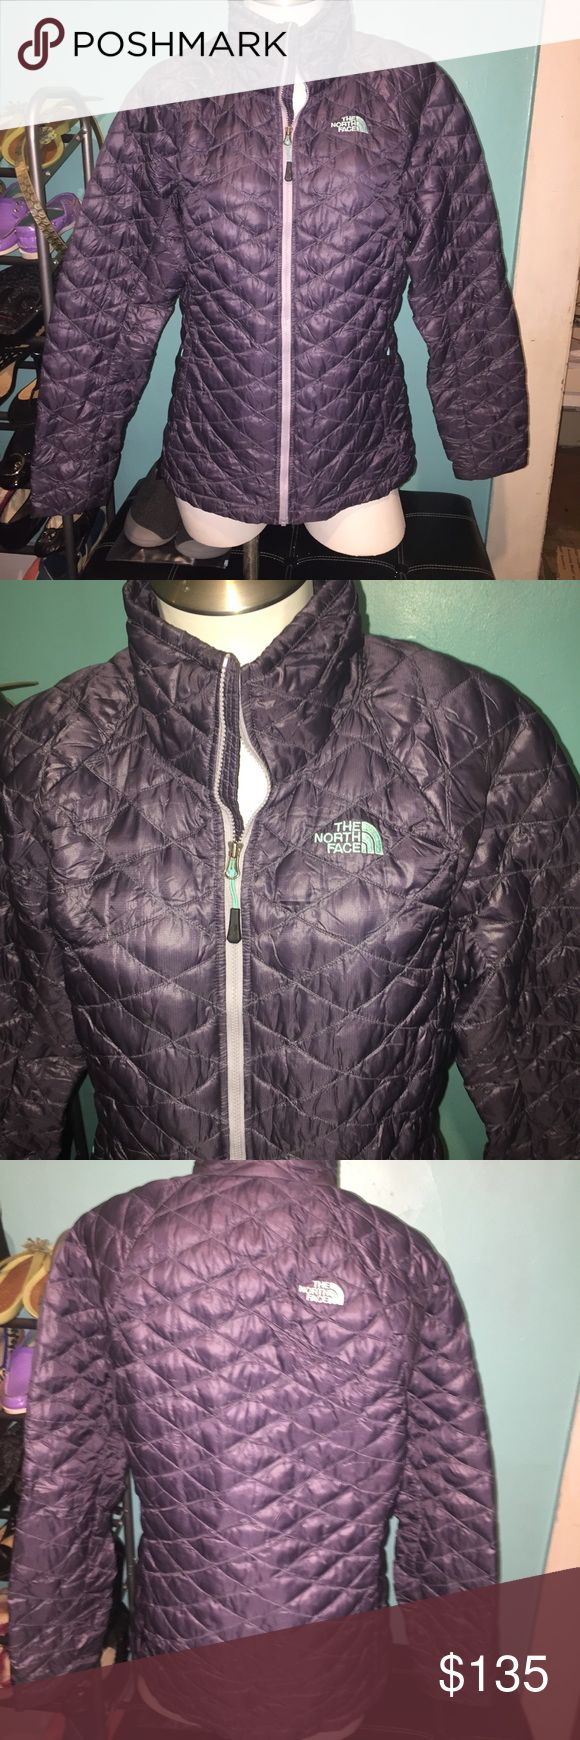 North Face thermoball jacket Perfect condition!! Super warm. Purple and Tiffany blue inside. Best jacket ever!! OPEN TO OFFERS! The North Face Jackets & Coats Puffers